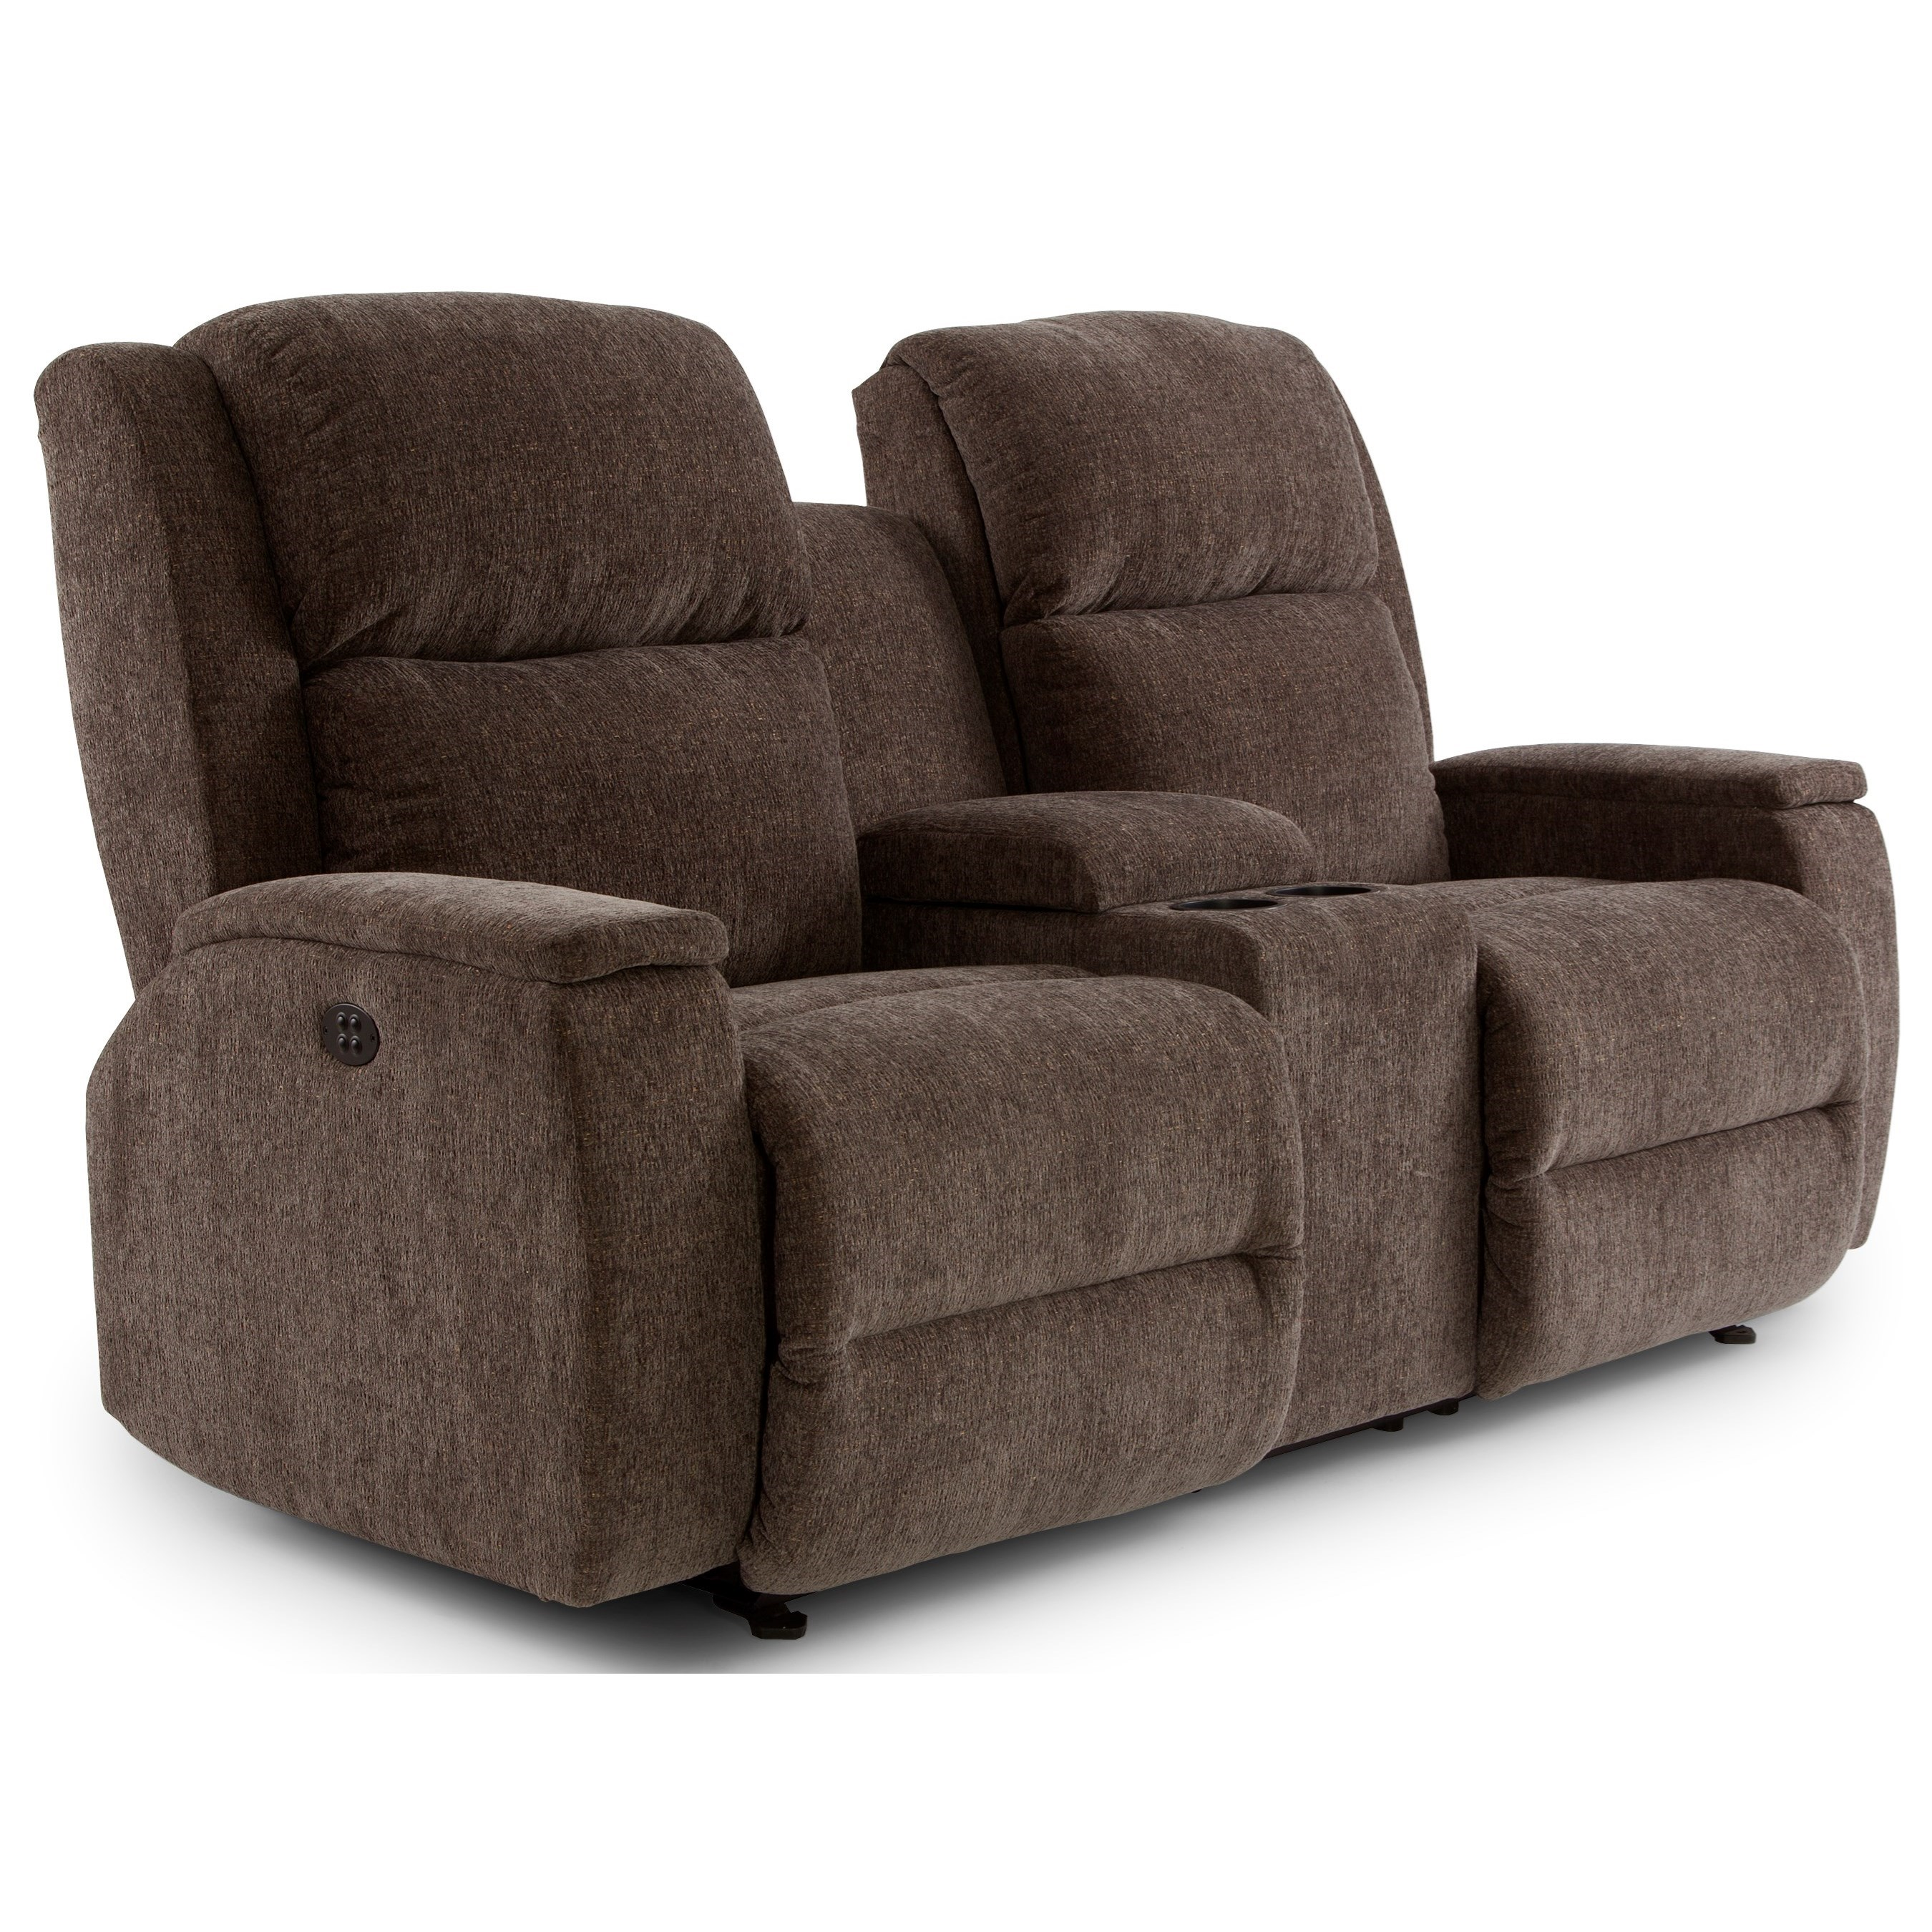 Power Rocking Reclining Console Loveseat With Power Tilt Headrest By Best Home Furnishings